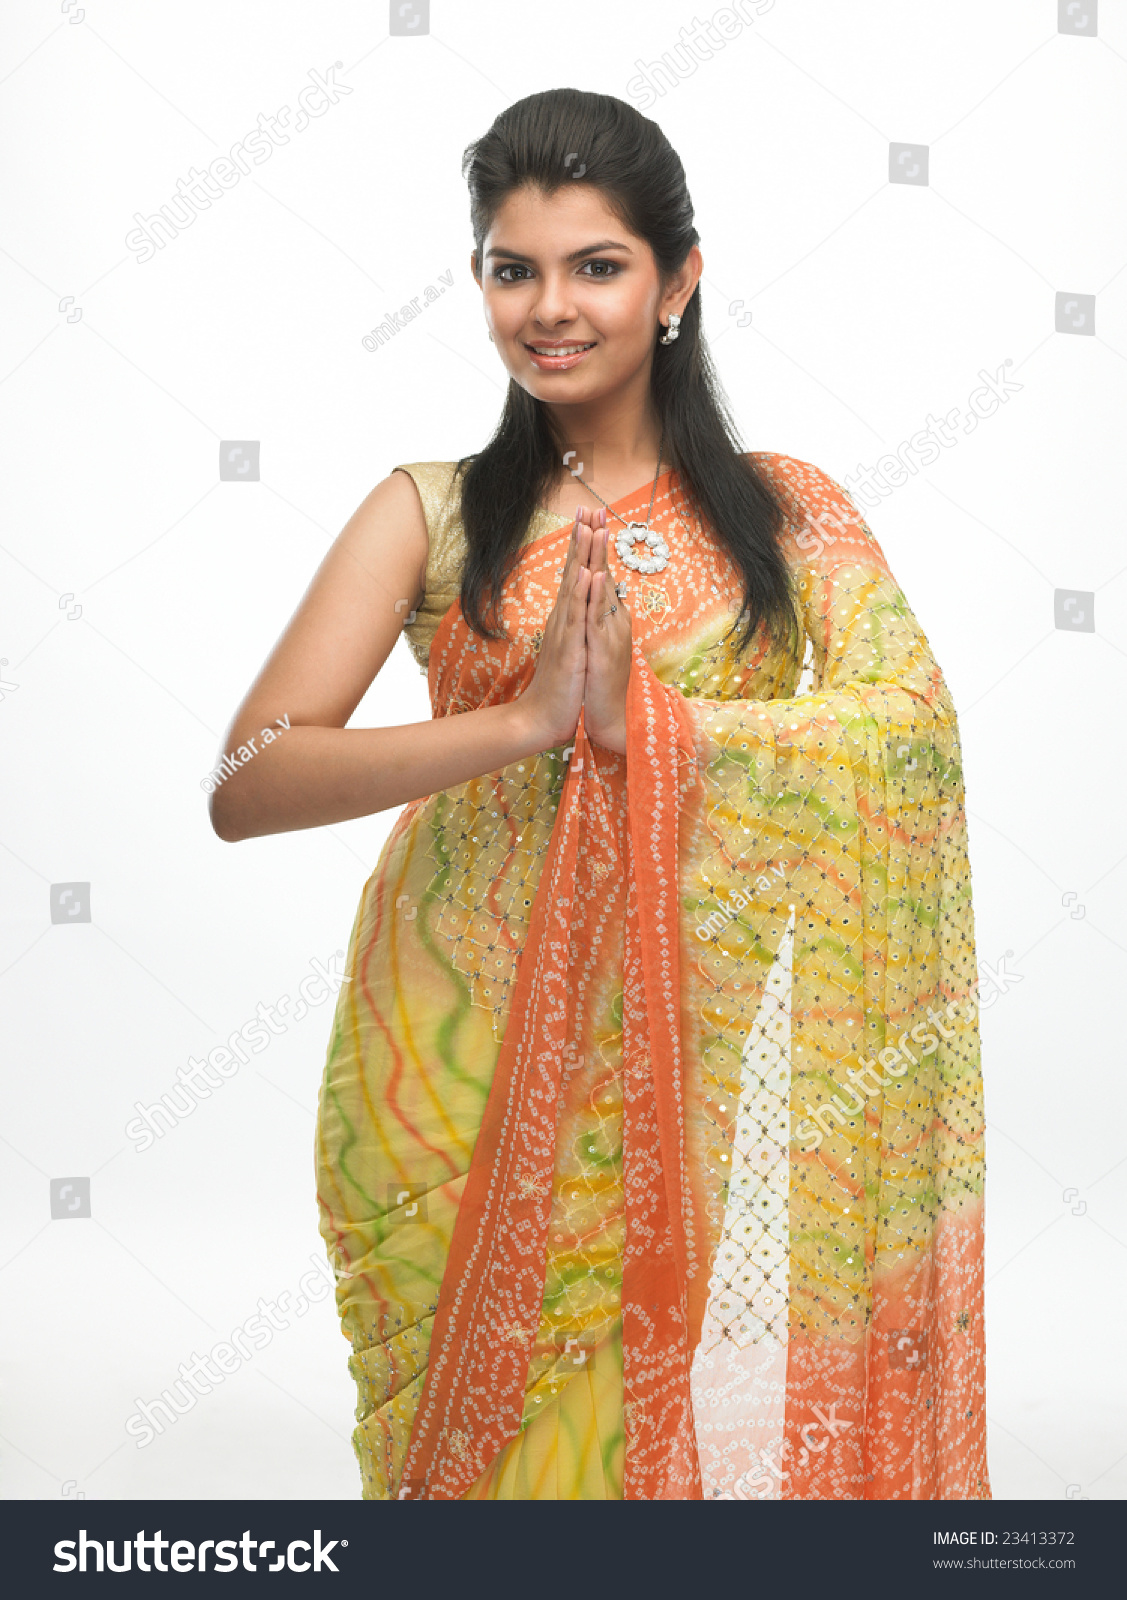 Indian Woman Tradition Sari Welcome Expression Stock Photo 23413372 - Shutterstock